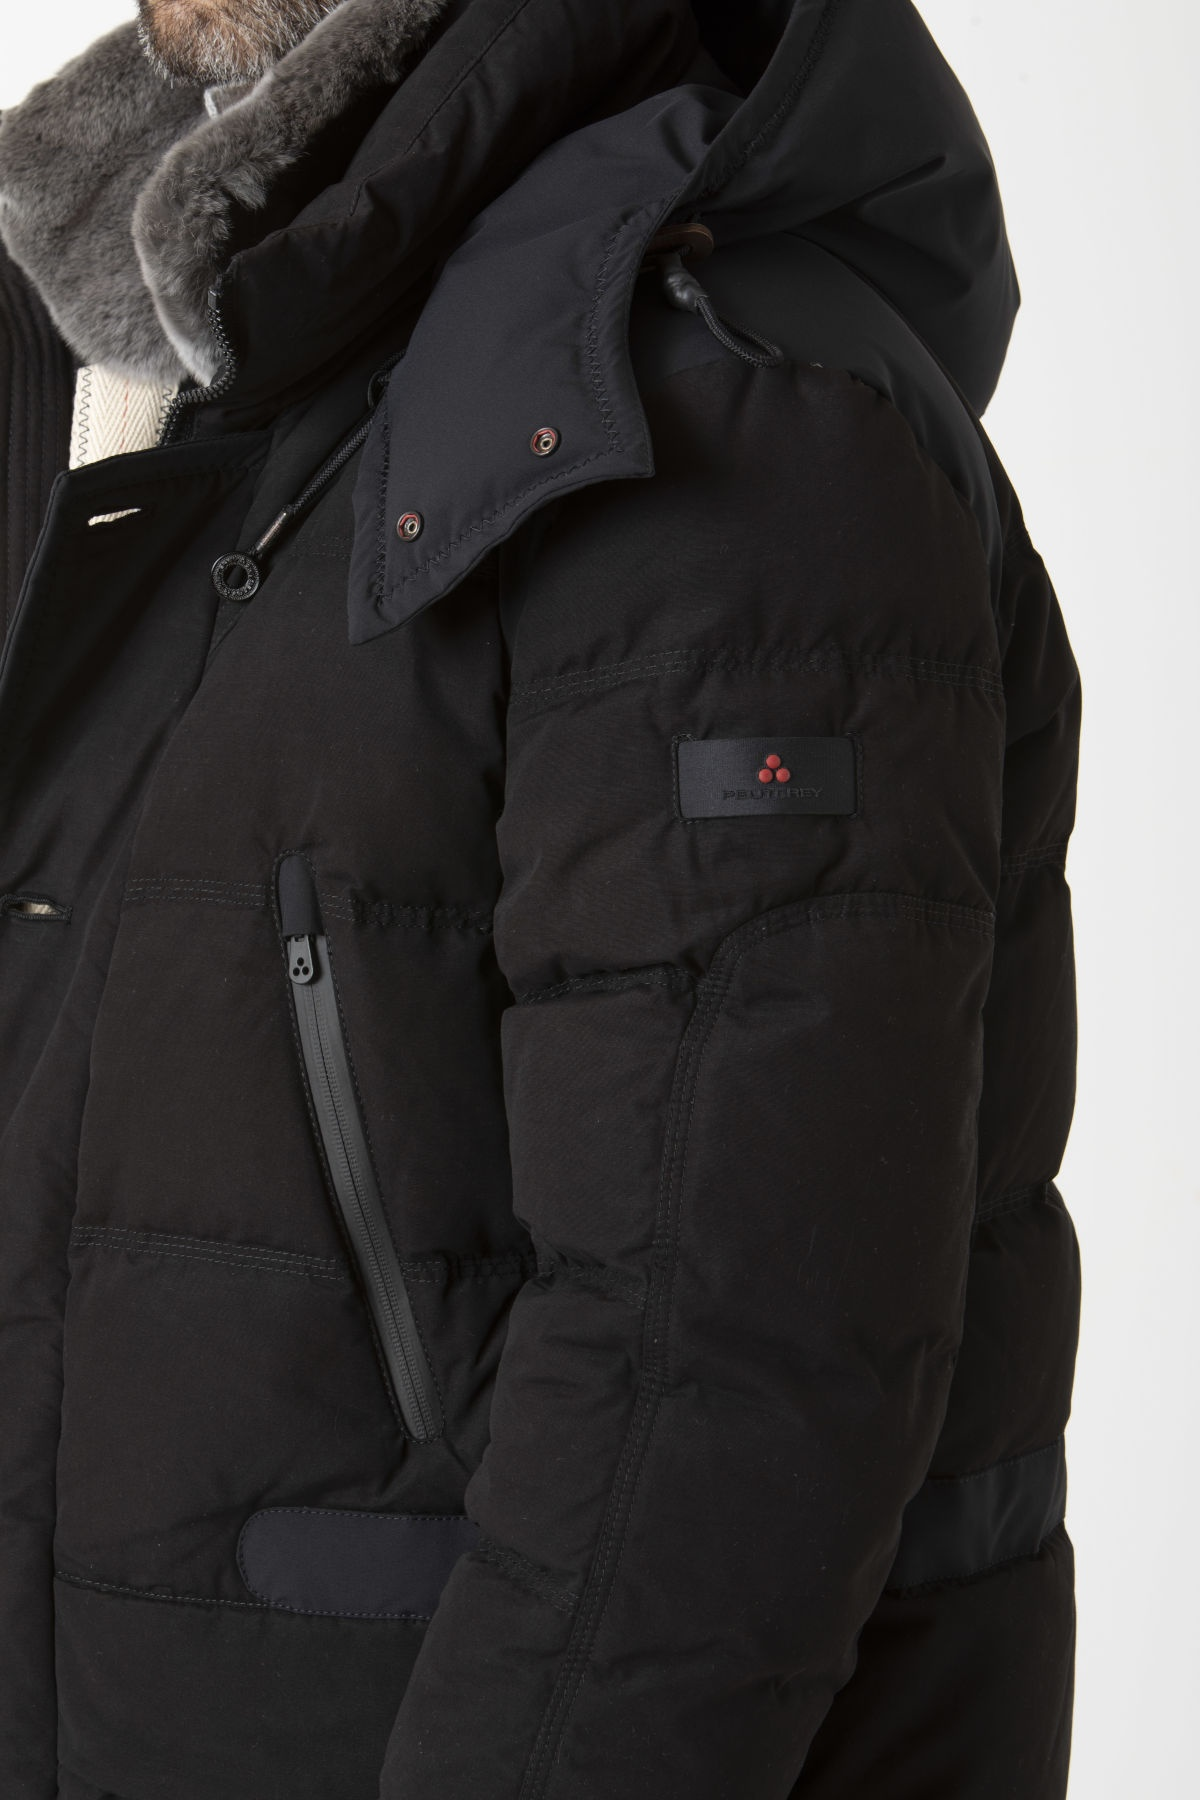 GUARDIAN 5.0 Parka for man PEUTEREY F/W 19-20